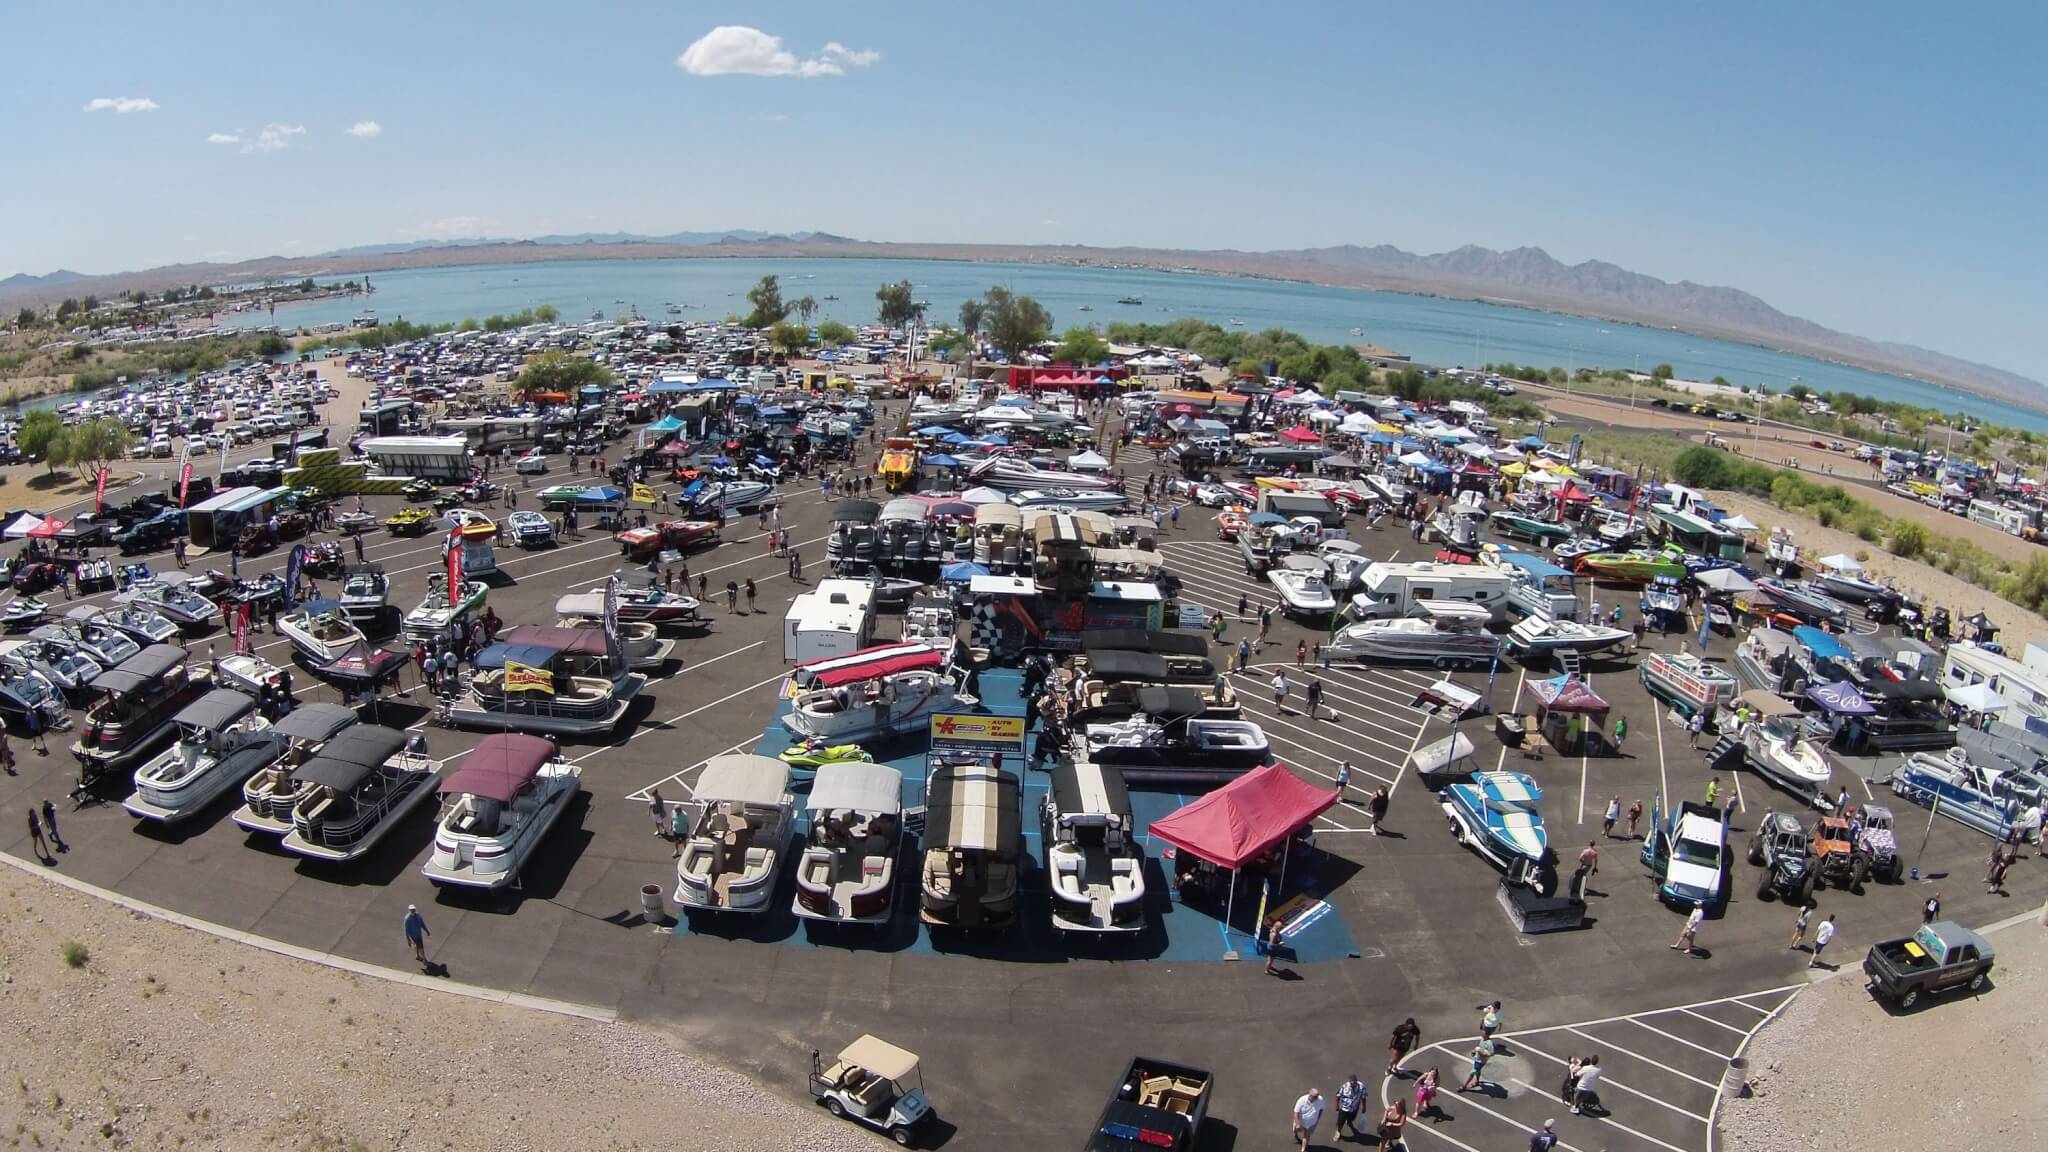 lake havasu sand water rv expo